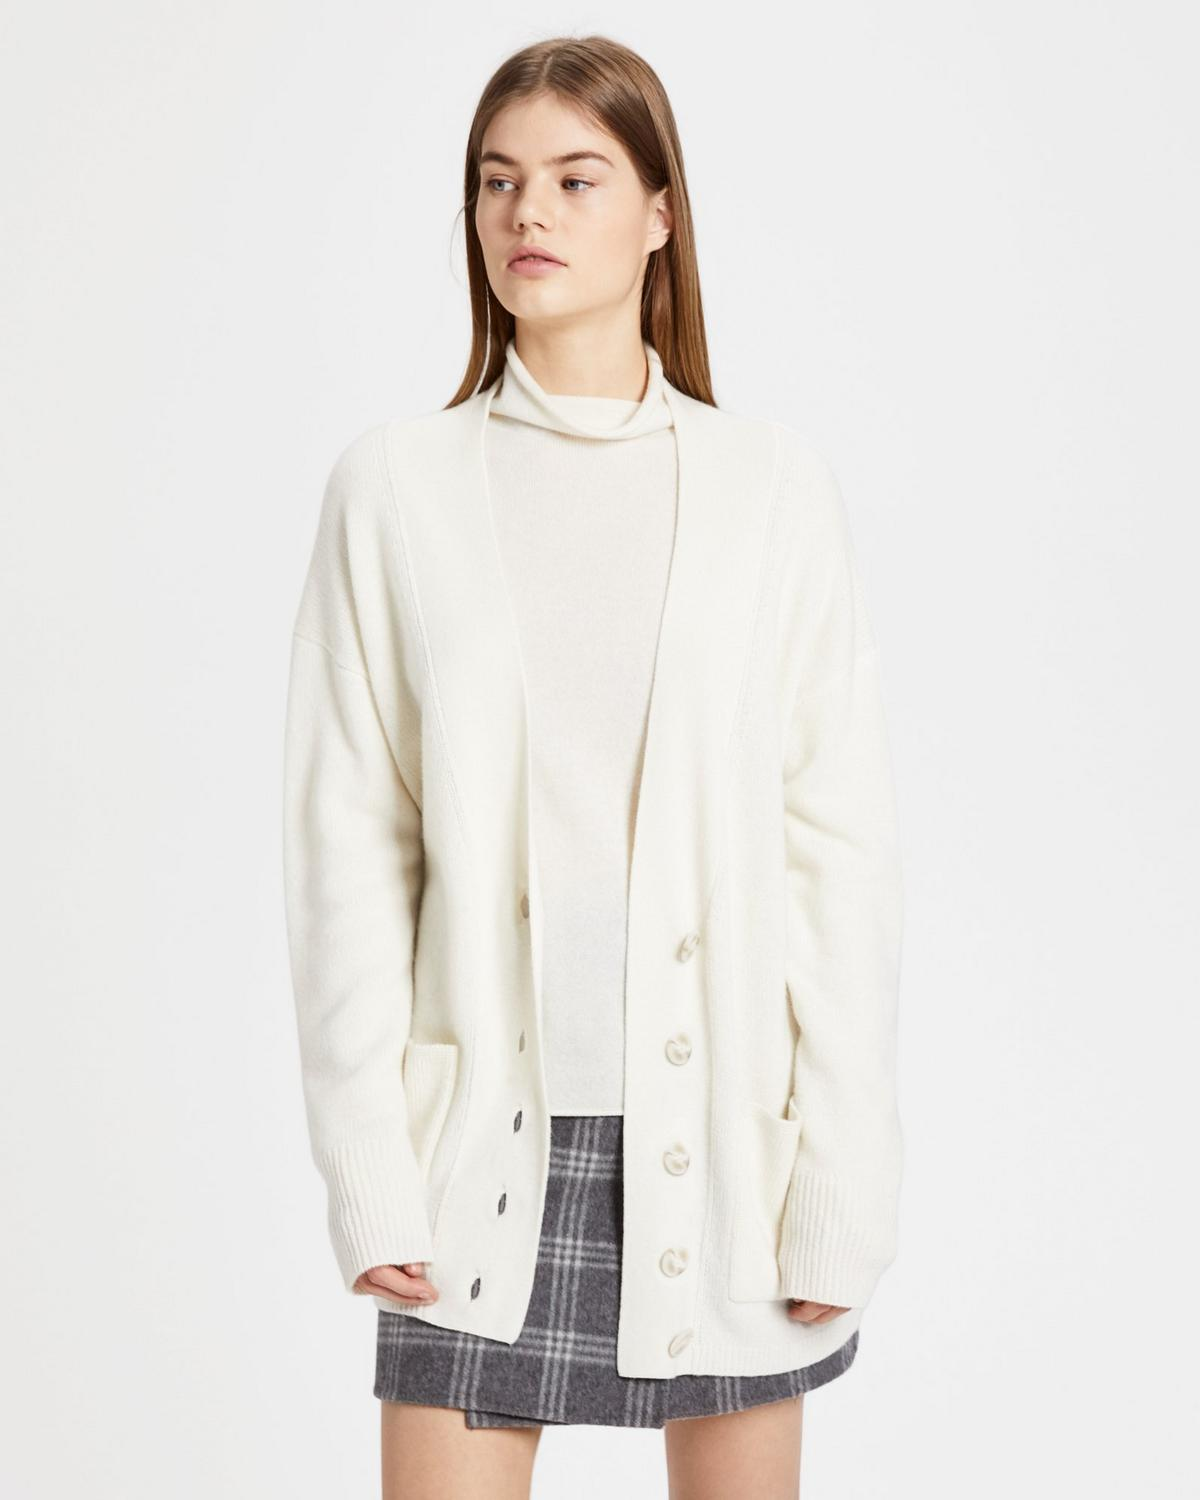 Oversized Placket Cardigan